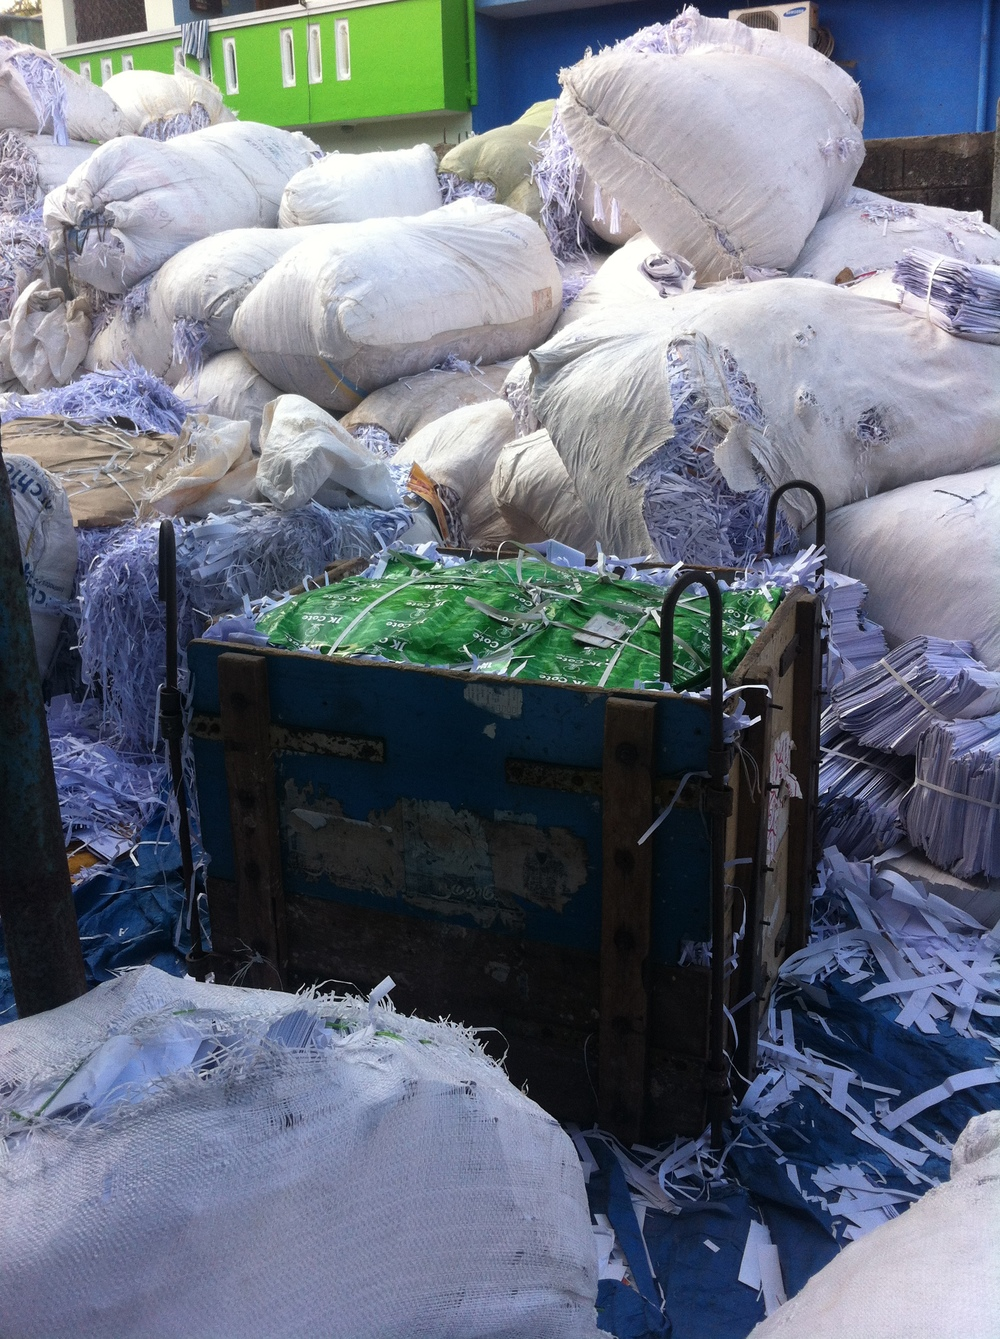 Shredded paper being baled before being transported.